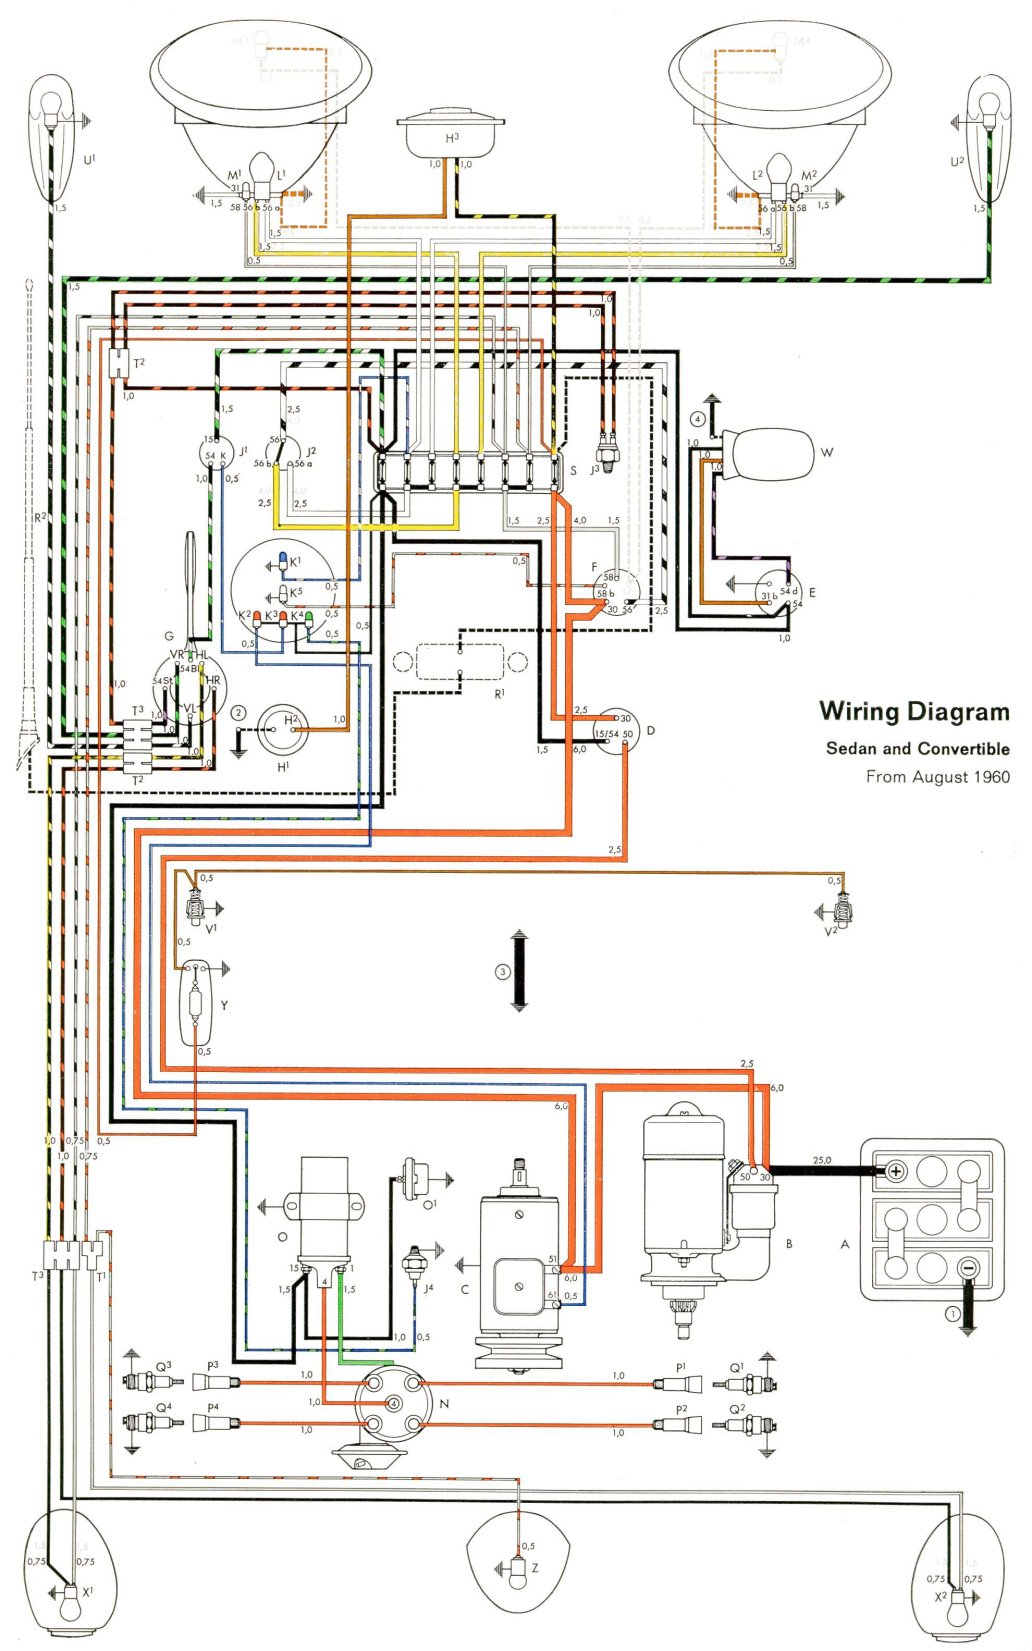 bug_61 1961 beetle wiring diagram thegoldenbug com vw buggy wiring diagram at panicattacktreatment.co